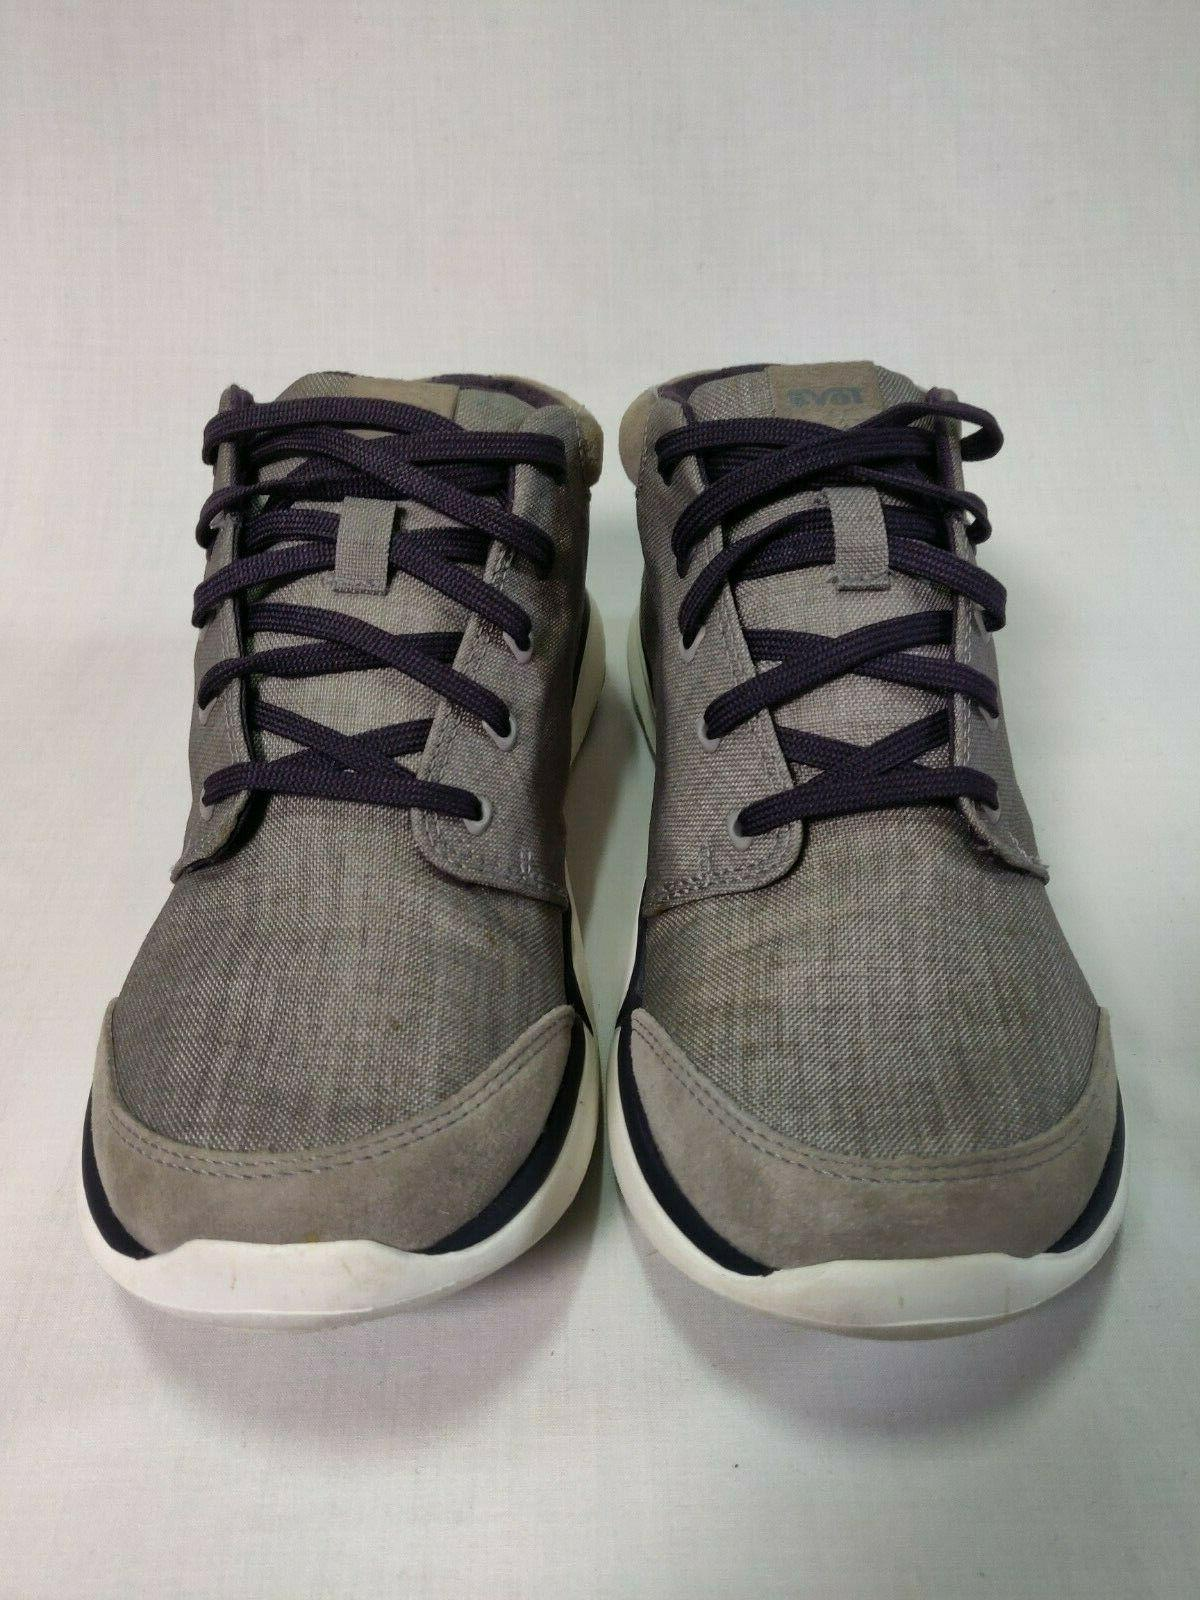 $60 Teva Wander Women's Shoes Gray Size 7